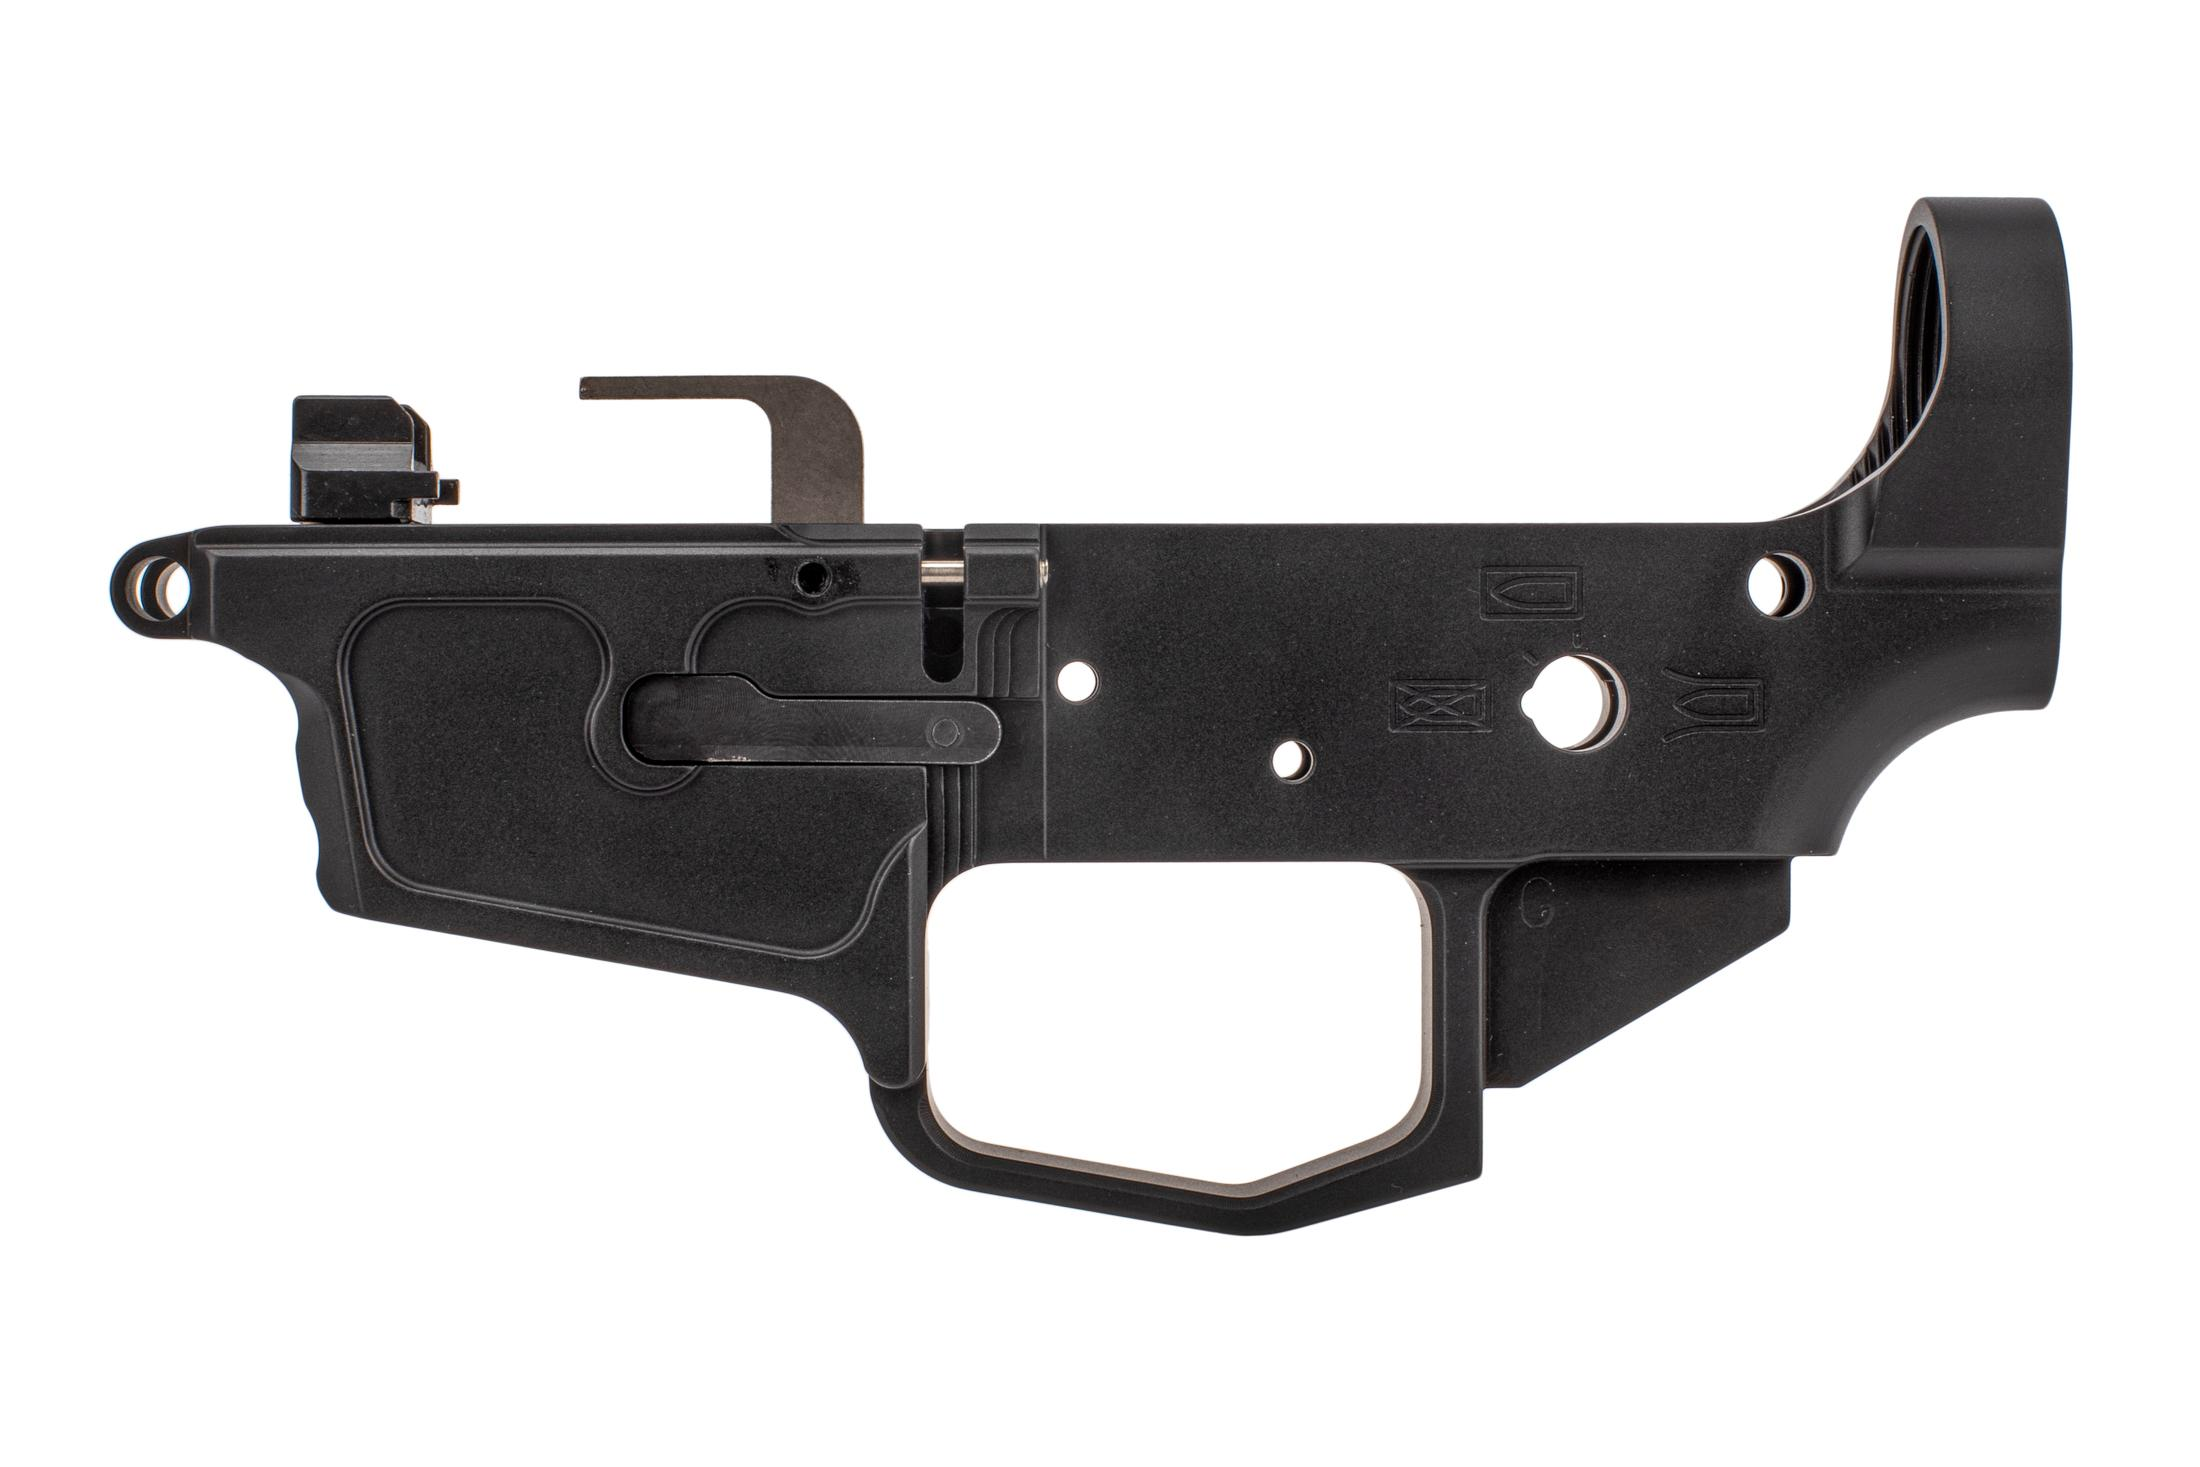 New Frontier 9mm stripped lower compatible with MP5 mags can use ambidextrous safety selectors